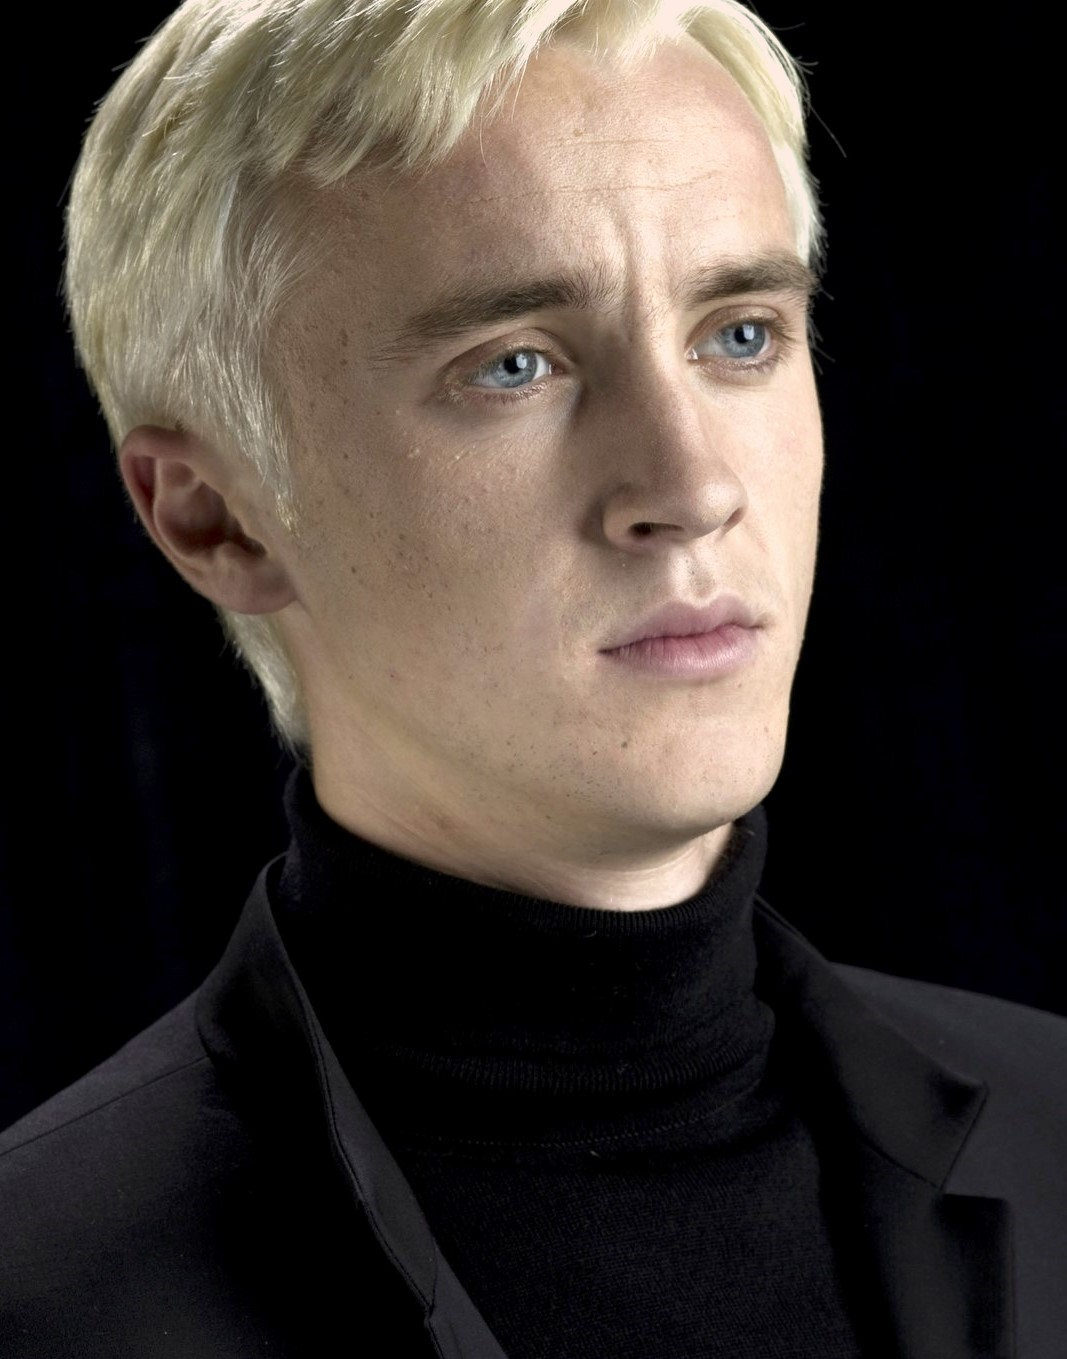 draco malfoy harry potter lexikon fandom powered by wikia. Black Bedroom Furniture Sets. Home Design Ideas